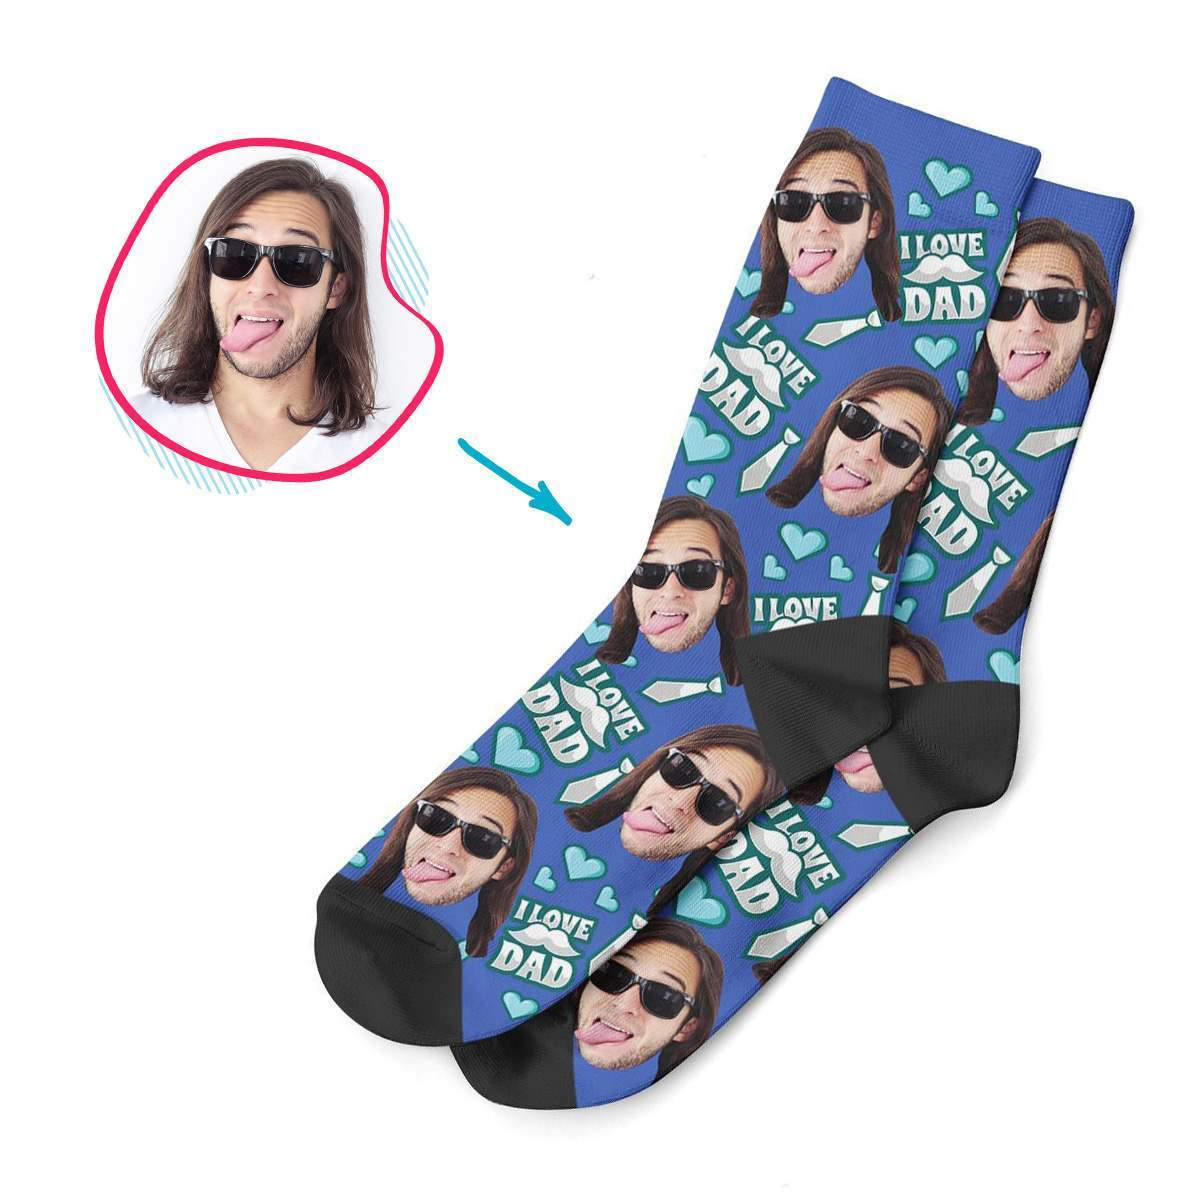 darkblue Love Dad socks personalized with photo of face printed on them